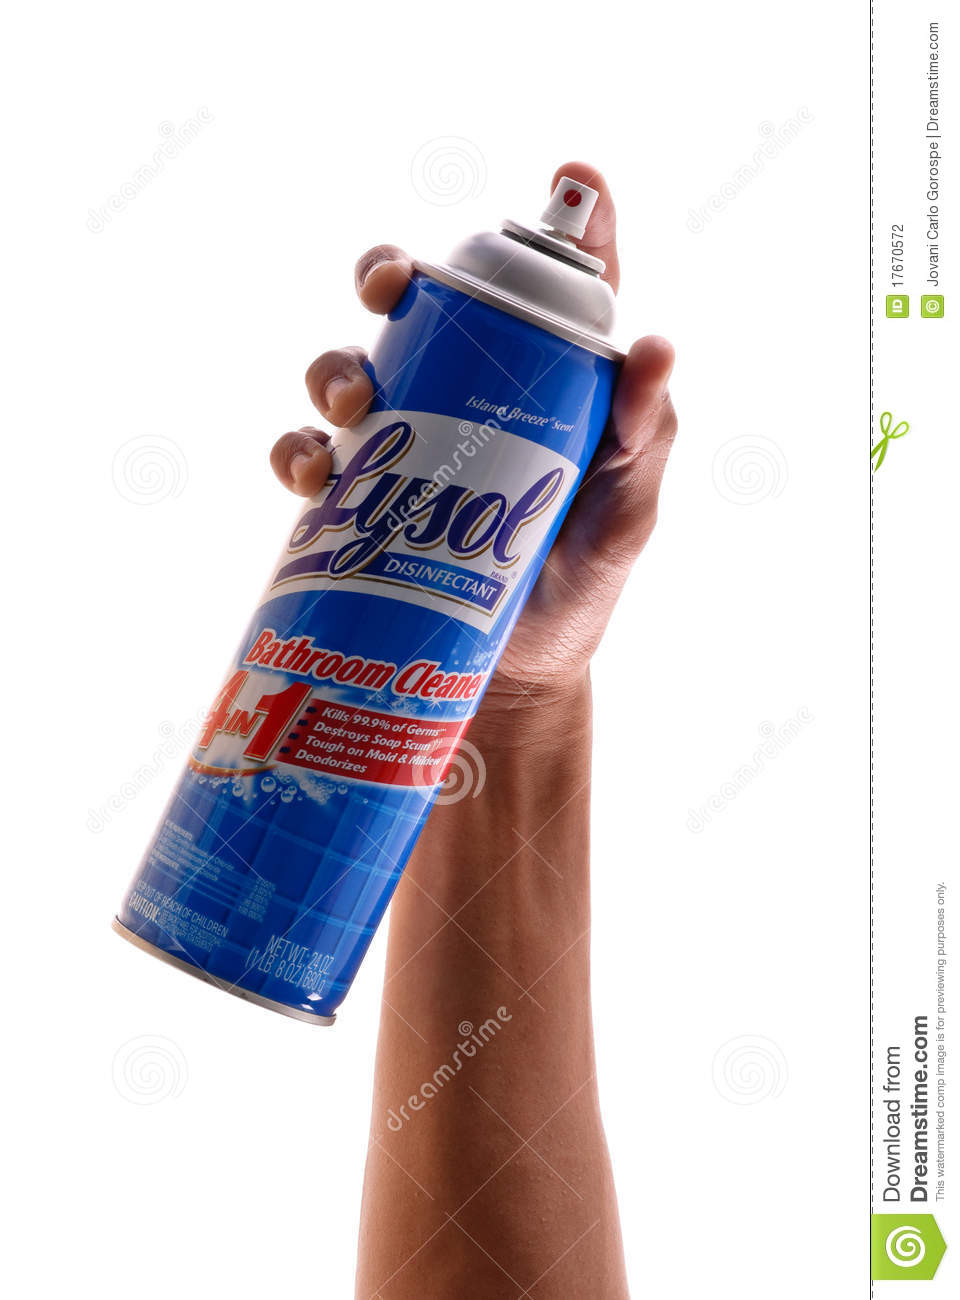 Lysol Disinfectant editorial photography Image of male